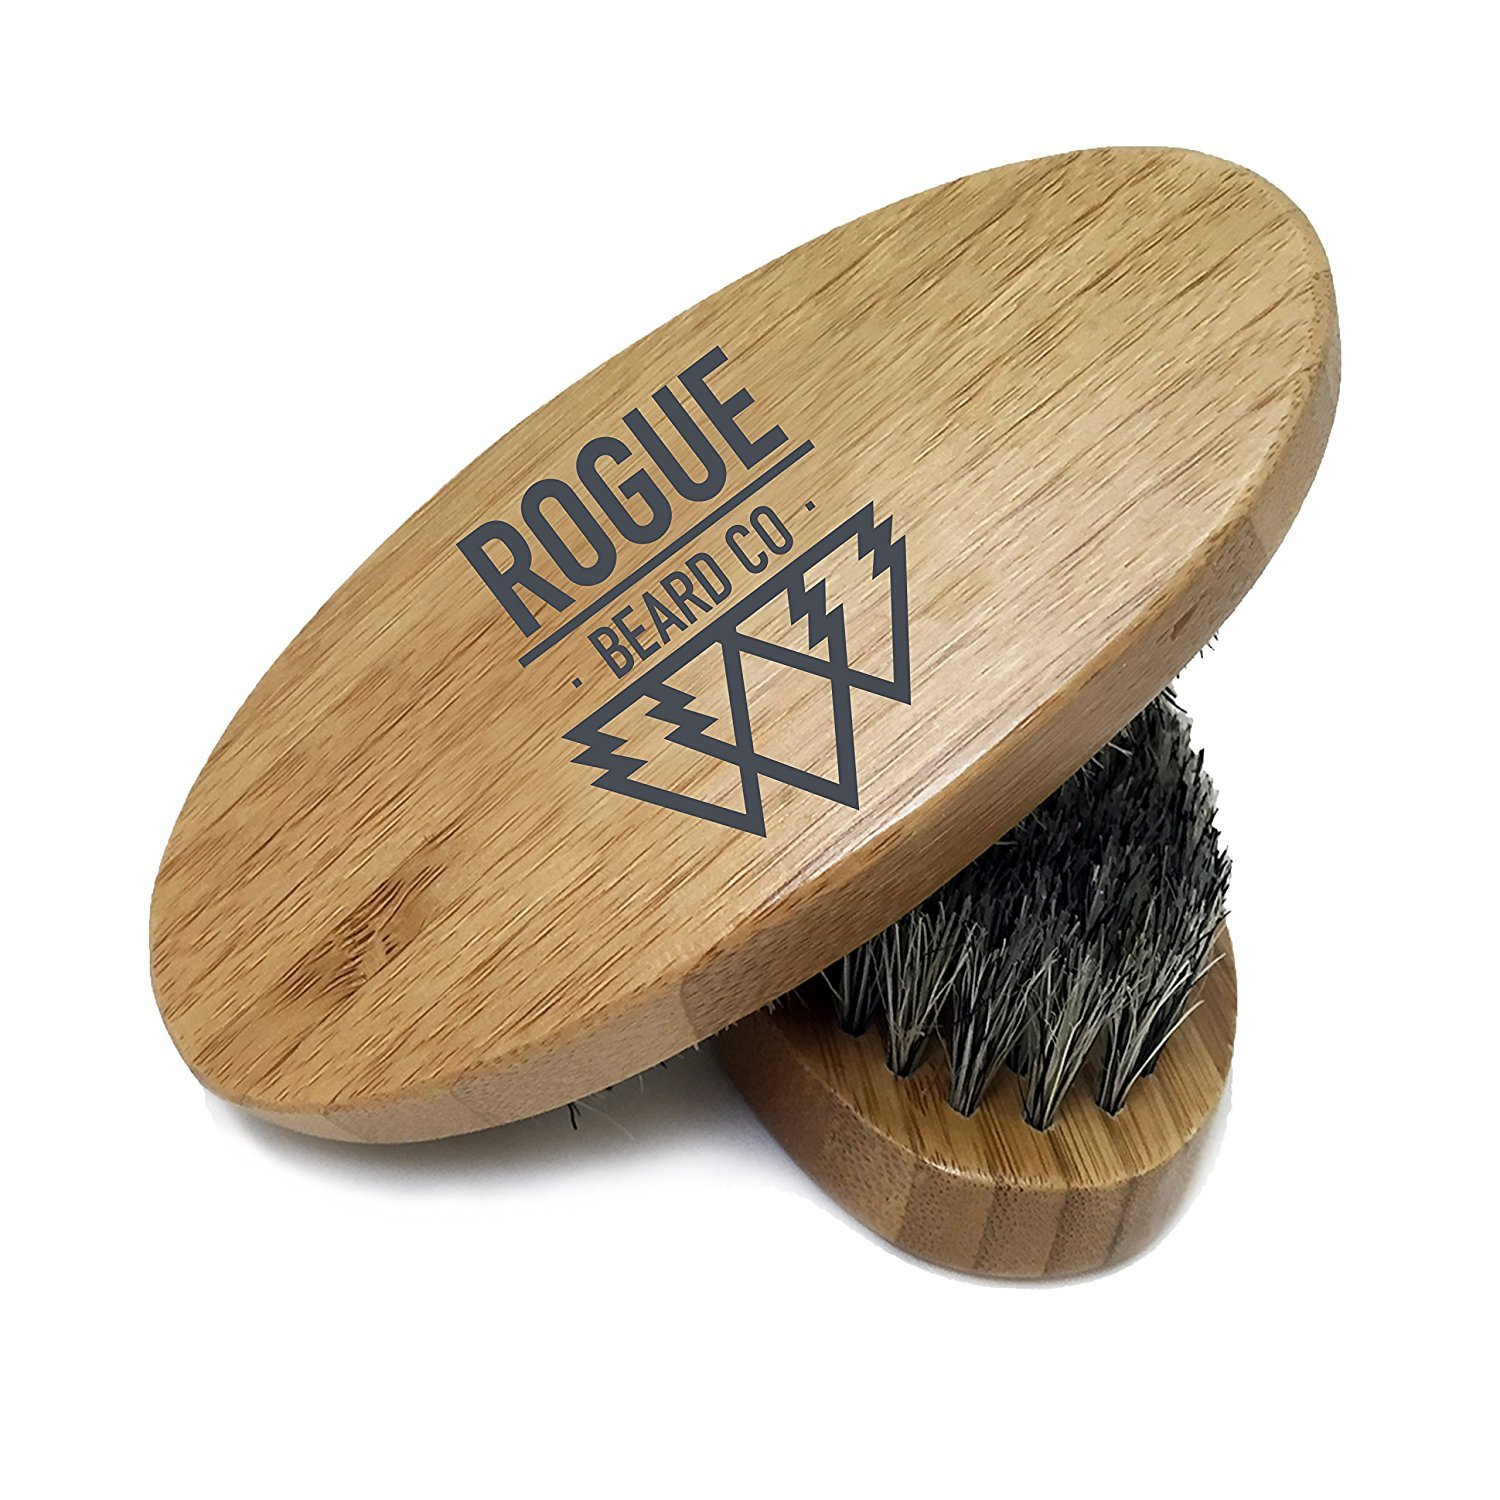 BEARD BRUSH - Wooden Boar Hair Bristle Beard Brush by Rogue Beard Company - Perfect For a Beard Grooming Kit for Men - Made of Boars Hair Bristles and Firm Natural Wood – Great For Men's Gift